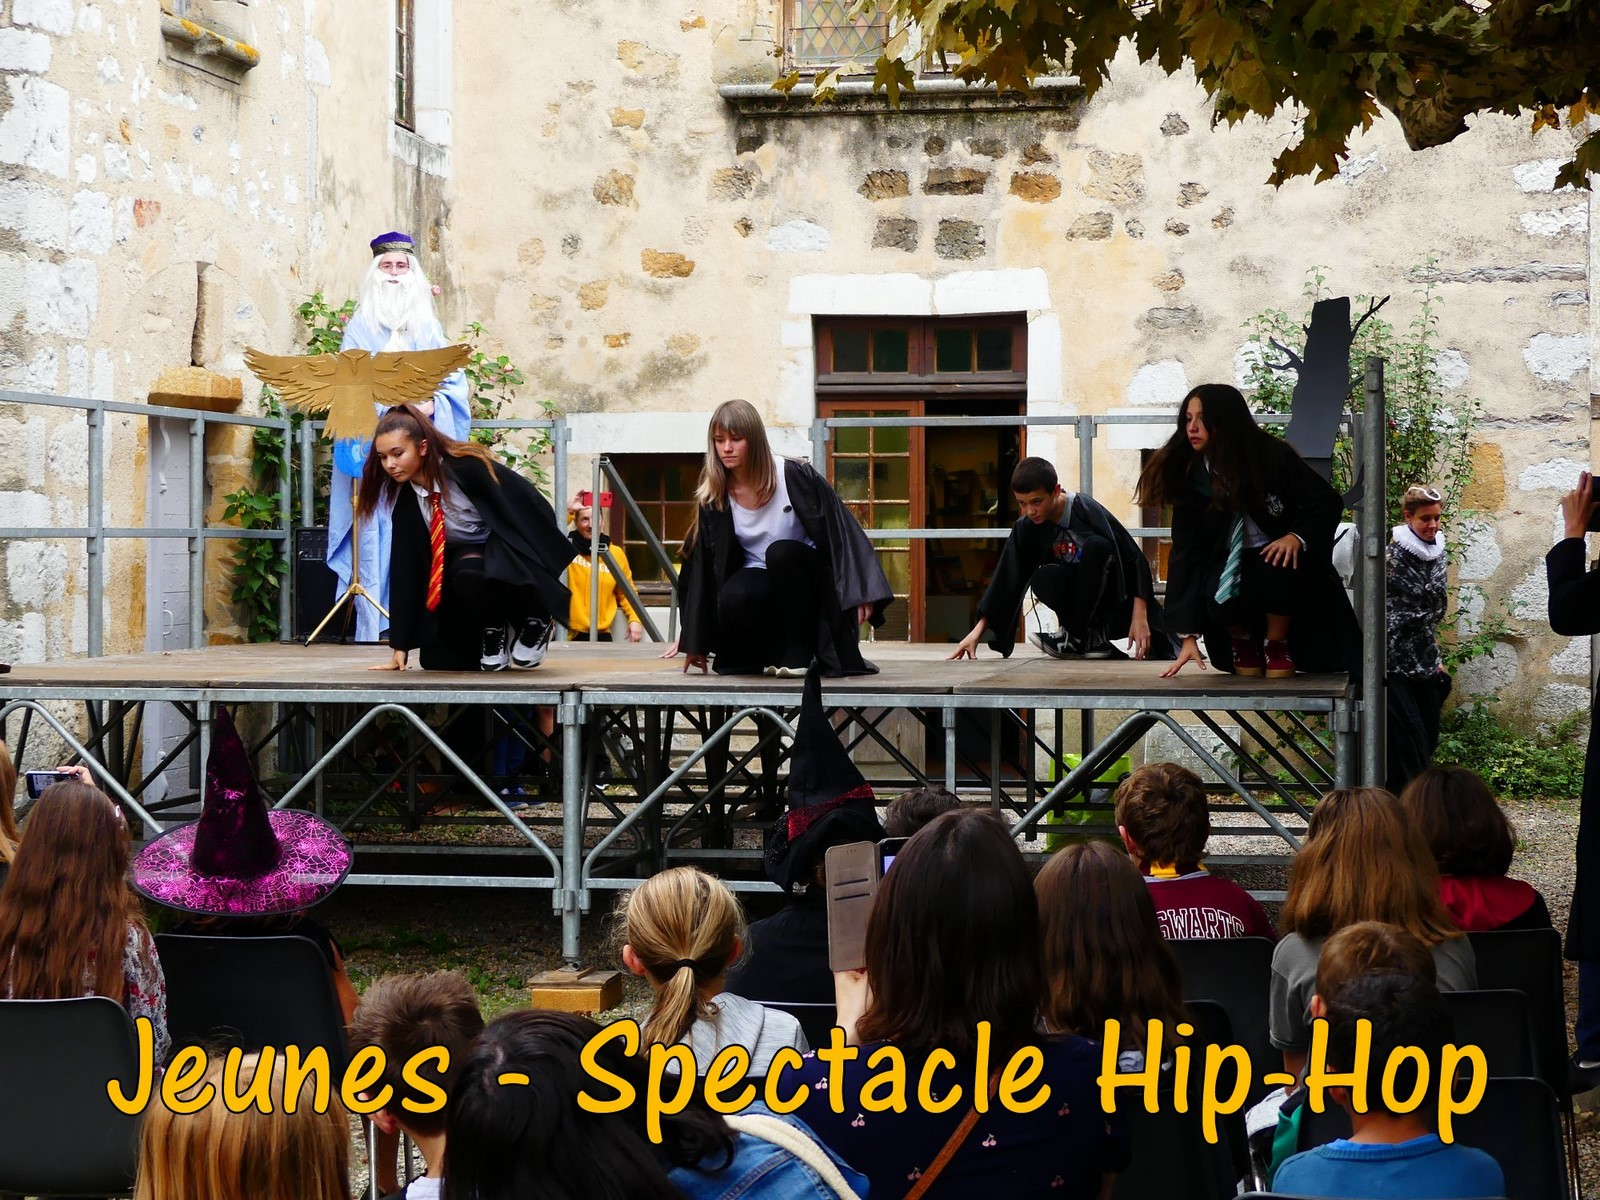 Hip-Hop-spectacle